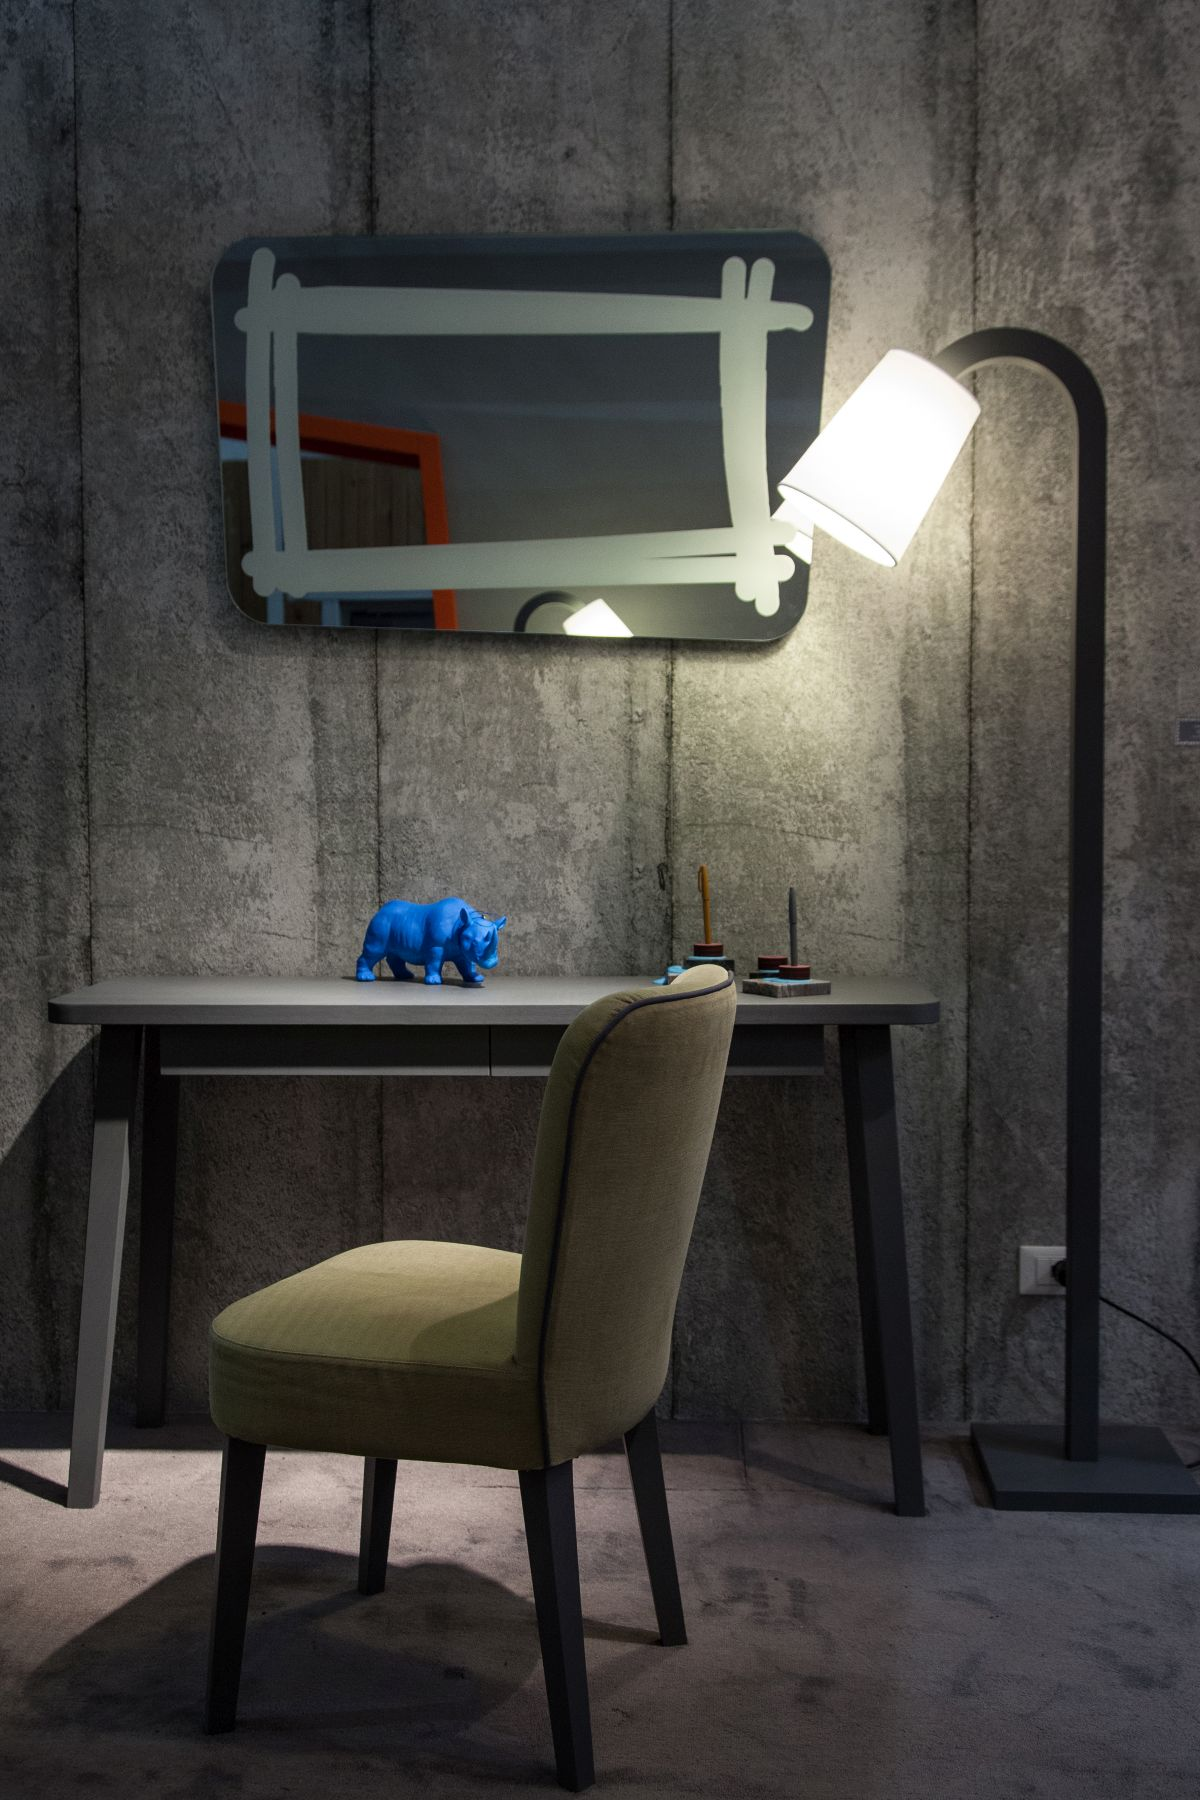 Desk area with floor lamp and mirror